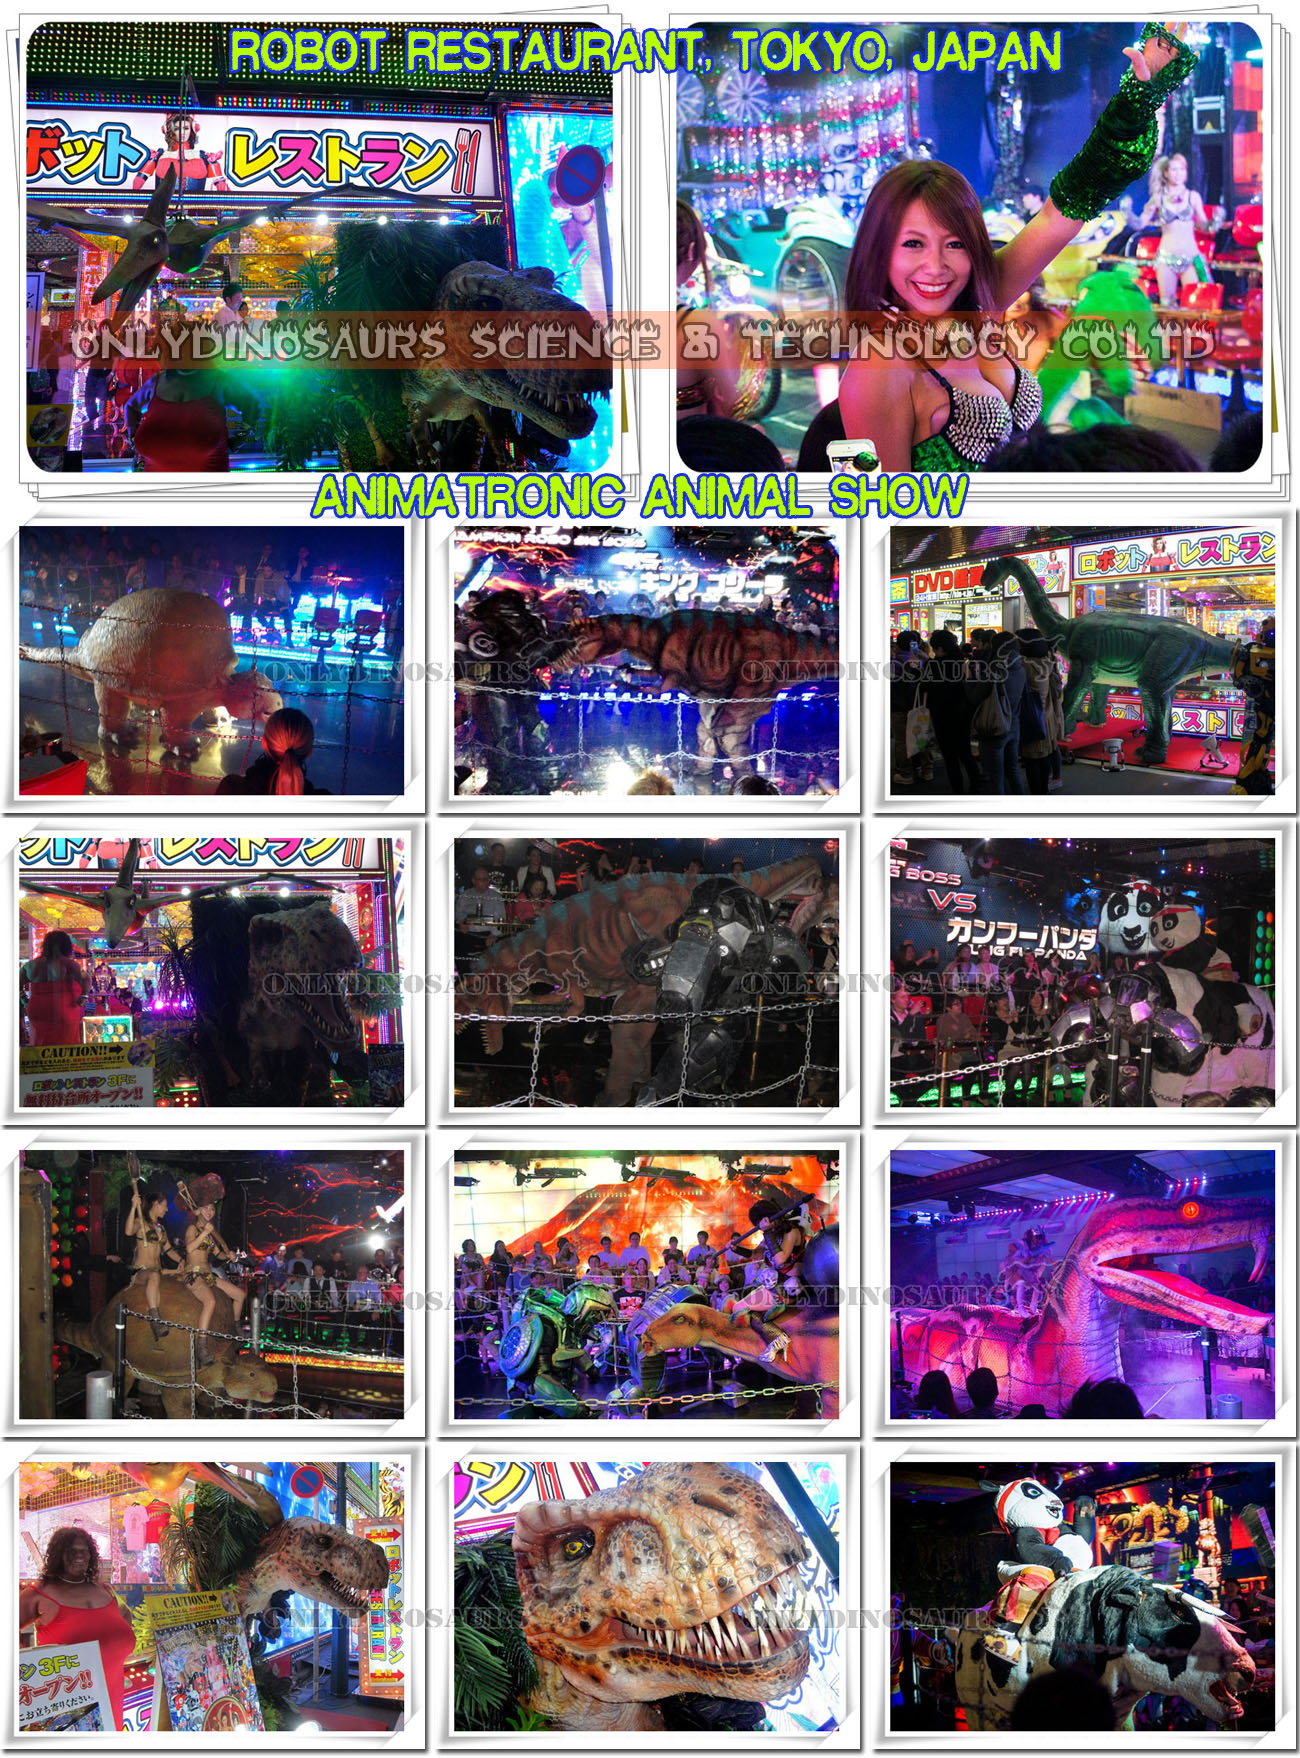 Animatronics Show for Robot Restaurant